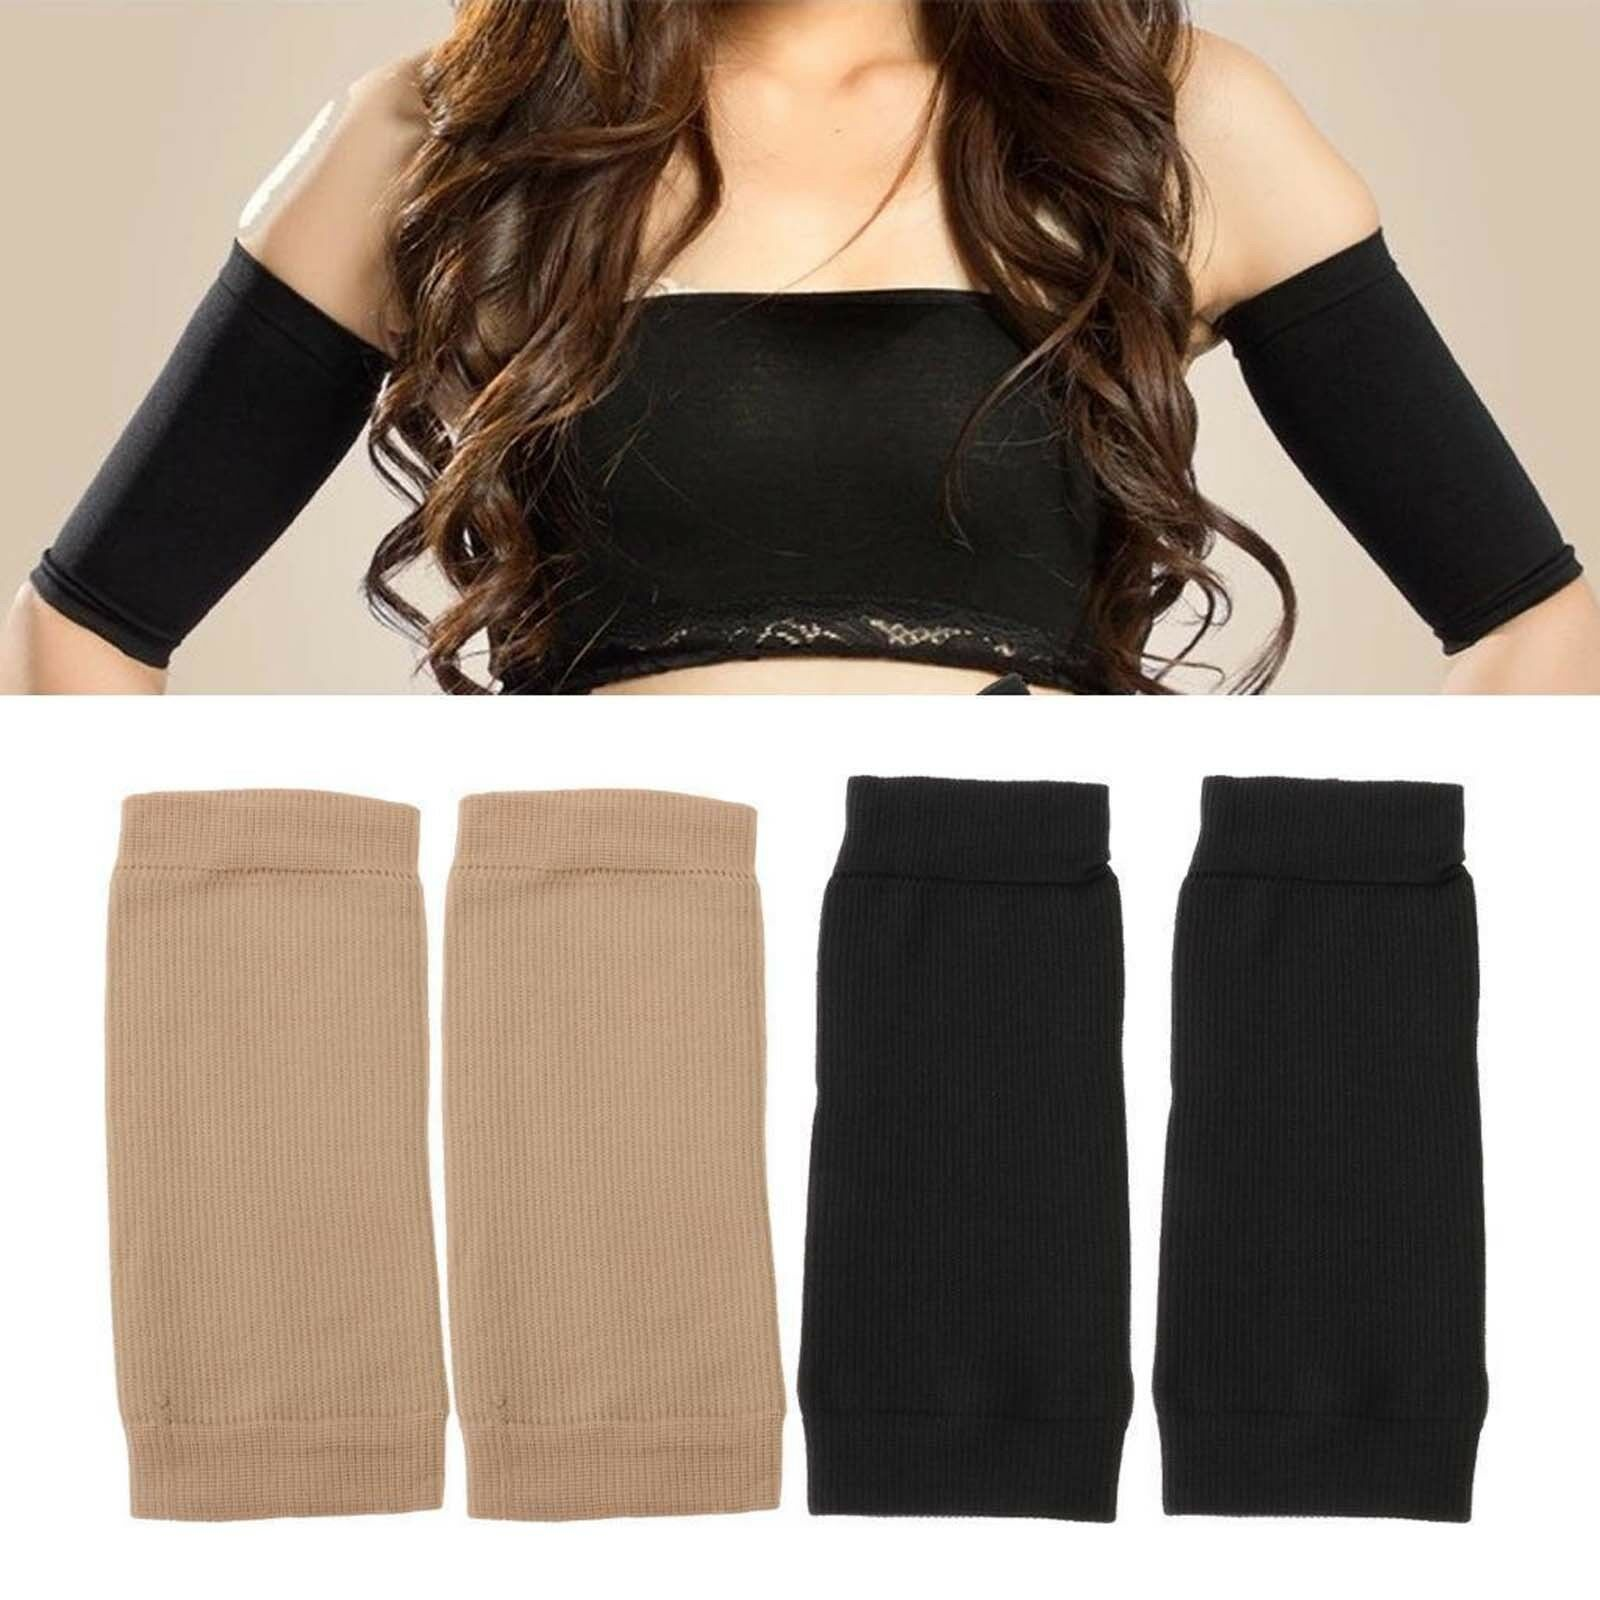 Compression Slim Arms Sleeve Shaping Arm Shaper Upper Arm Supports 2color Us